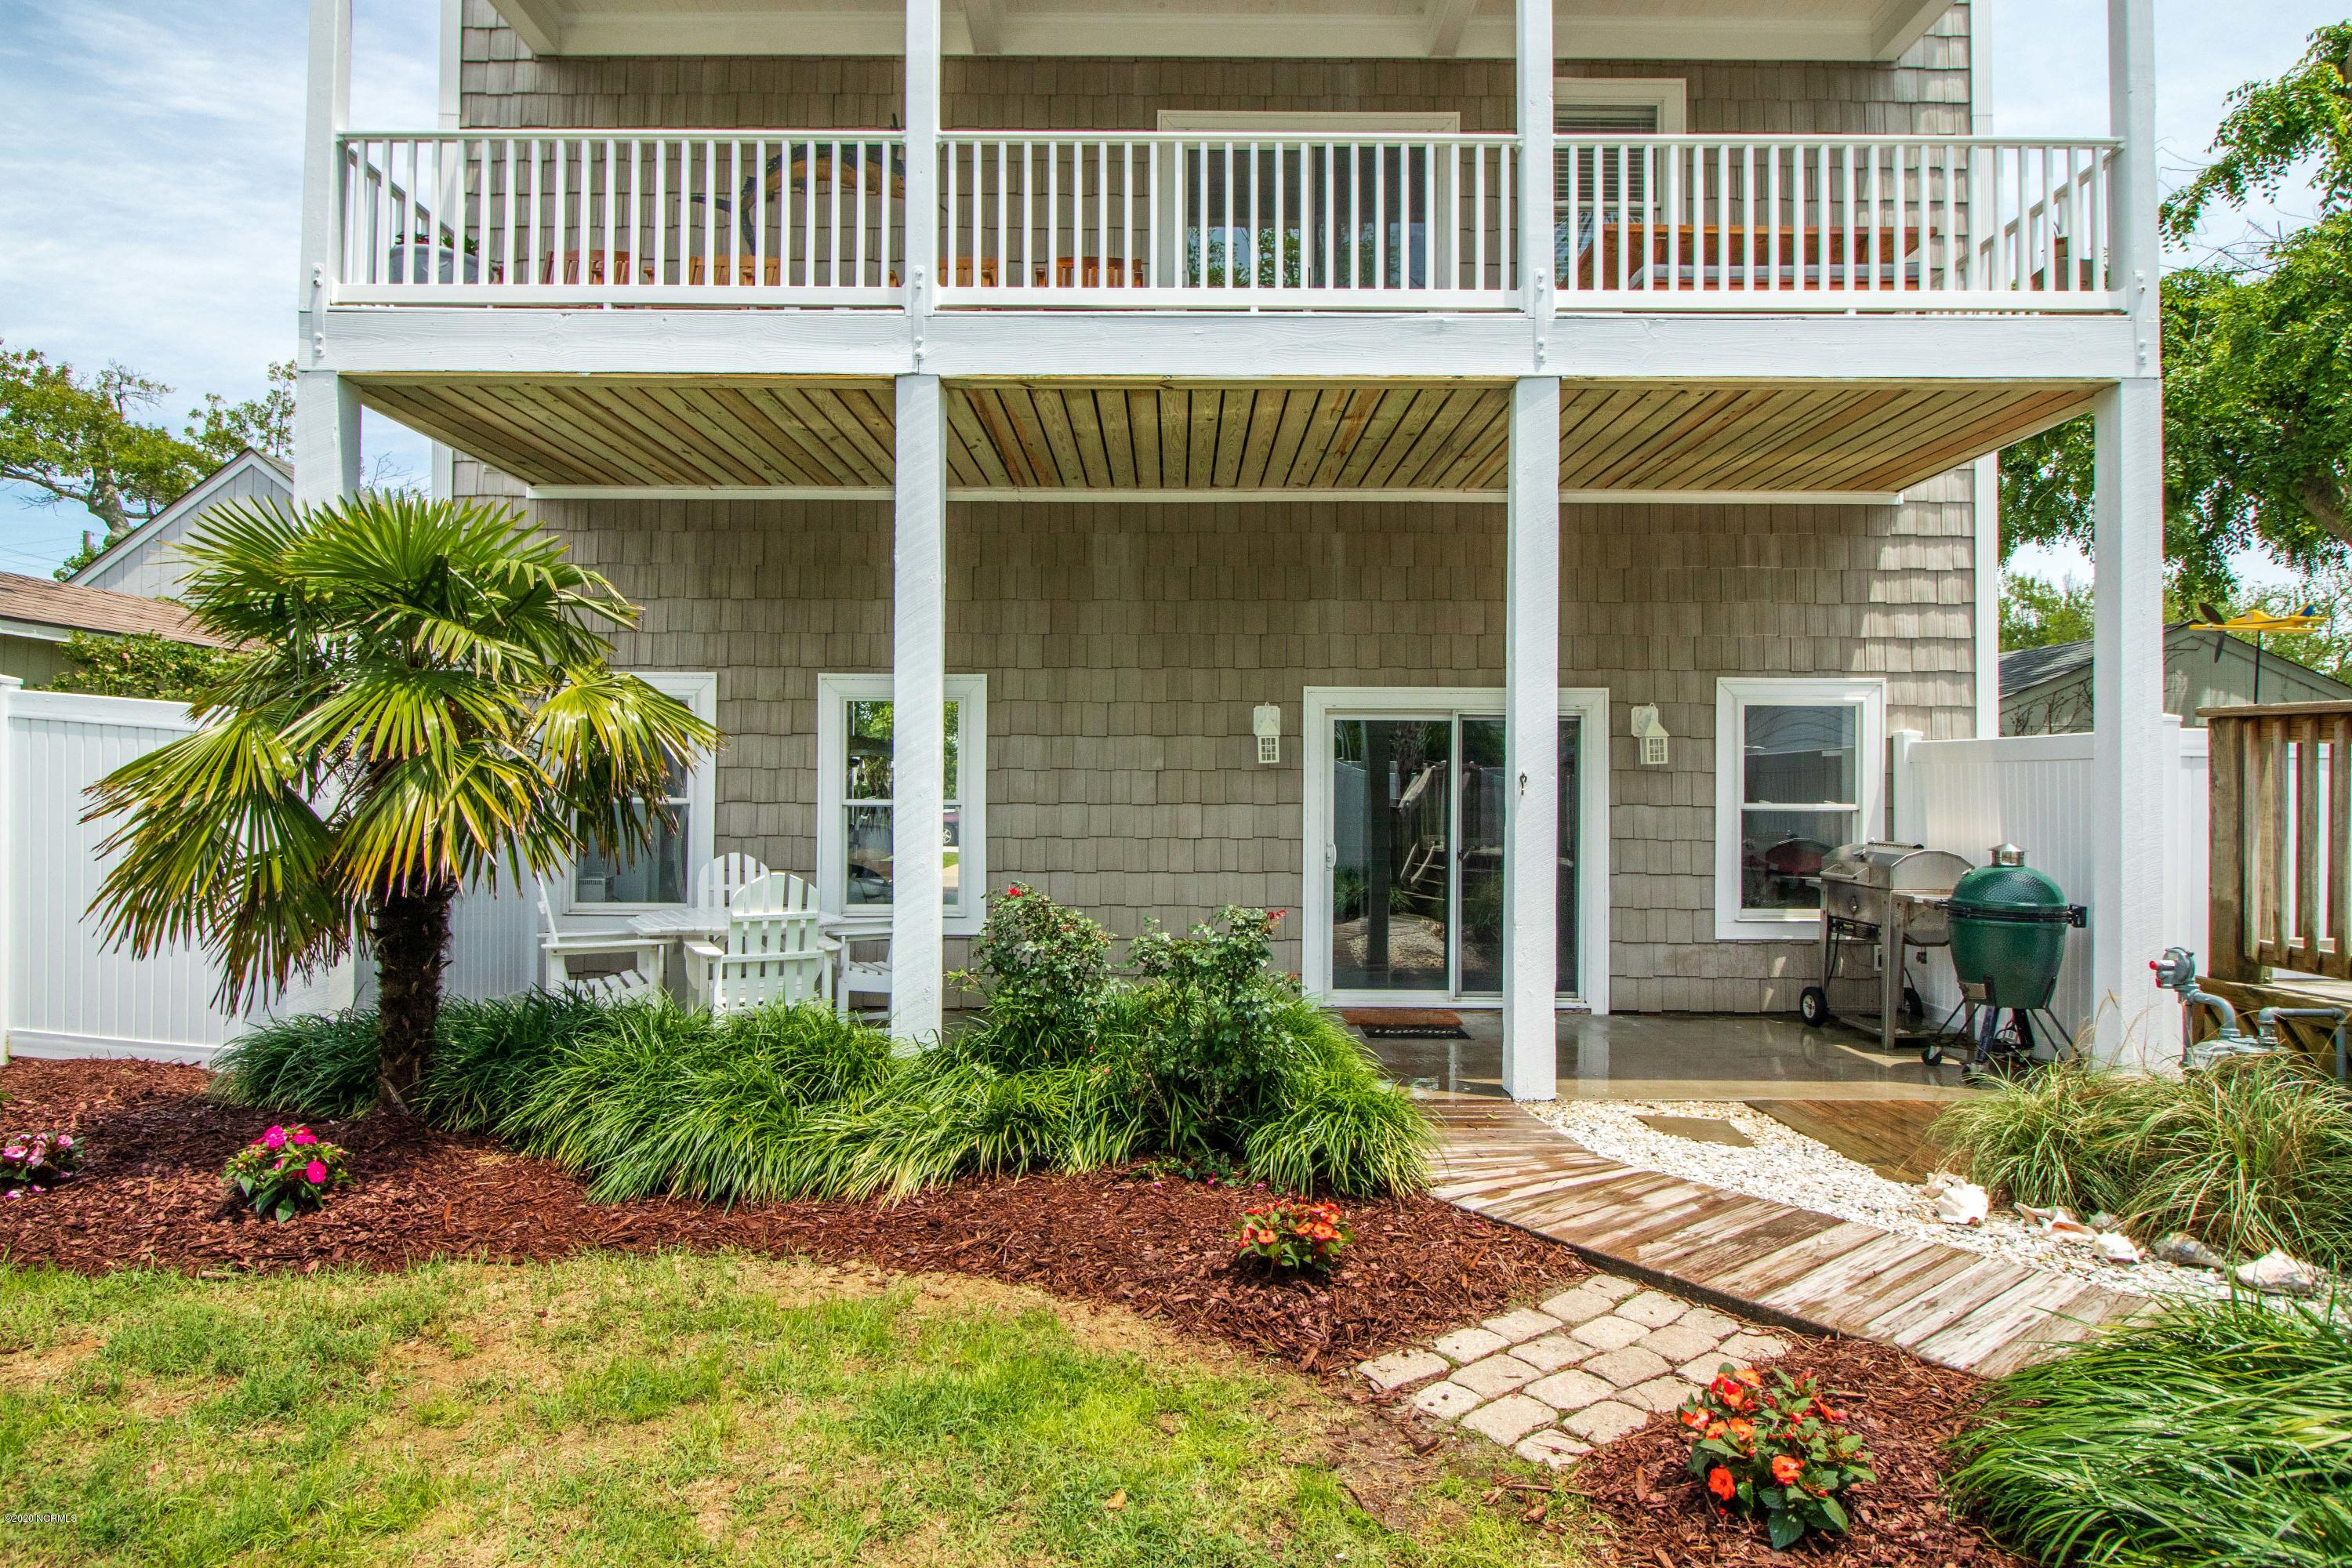 204 18th Street, Morehead City, North Carolina 28557, 3 Bedrooms Bedrooms, 9 Rooms Rooms,2 BathroomsBathrooms,Single family residence,For sale,18th,100218655